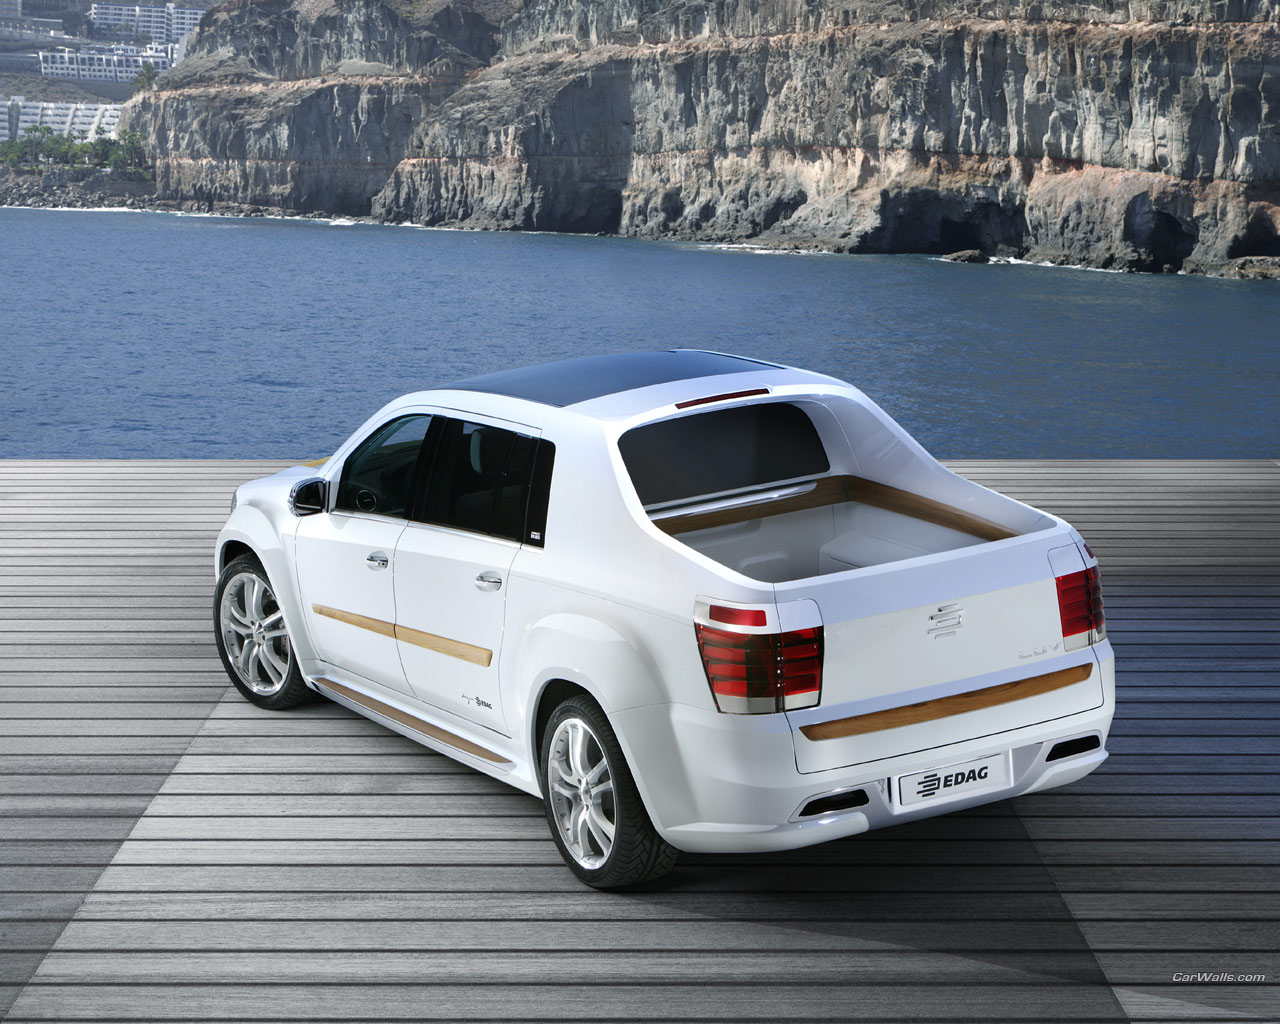 2007 Edag - Luv pick-up Concept